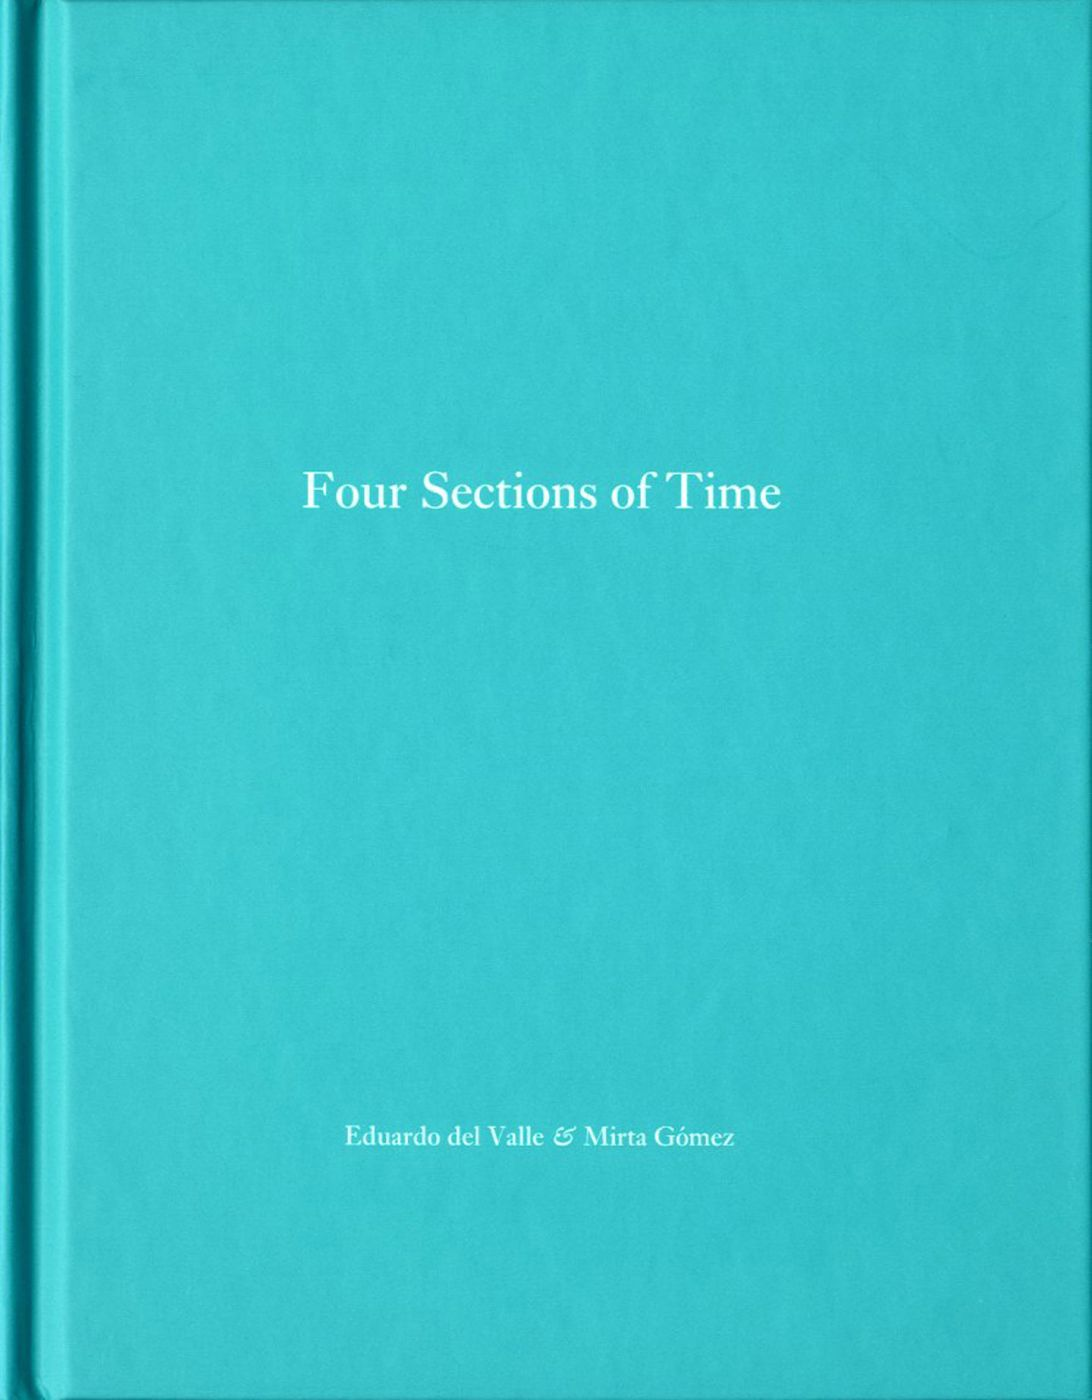 Eduardo del Valle and Mirta Gómez: Four Sections of Time (One Picture Book #22), Limited Edition (with Print)